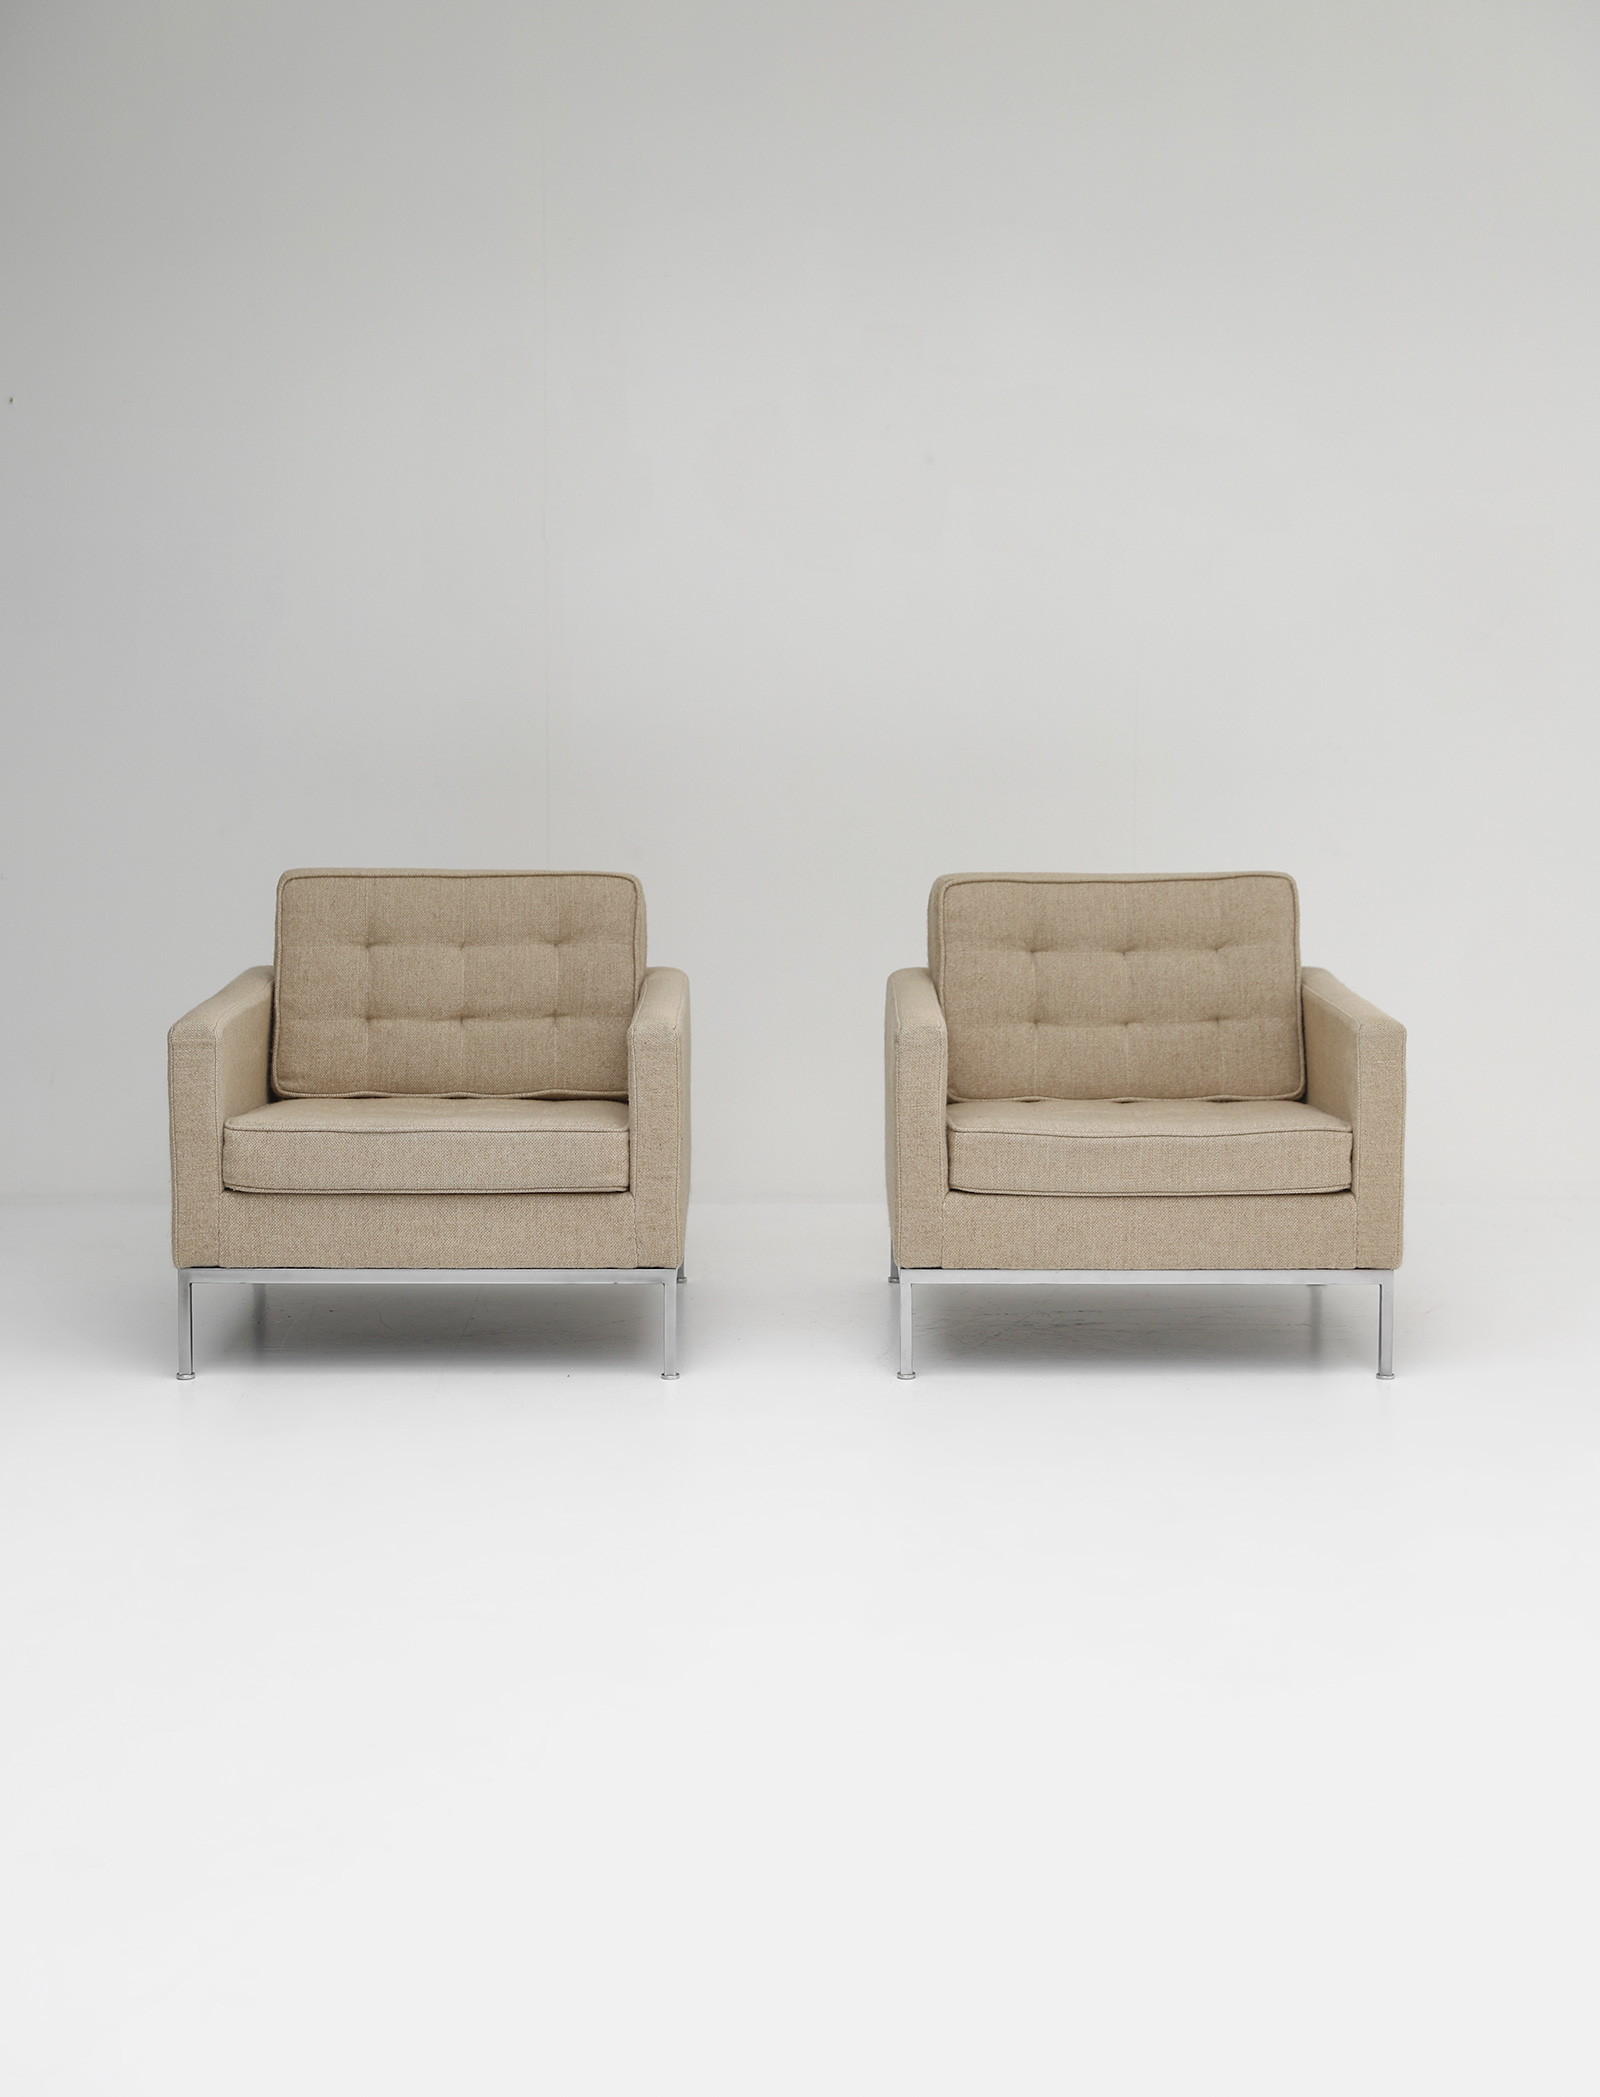 Florence Knoll Arm Chairsimage 11